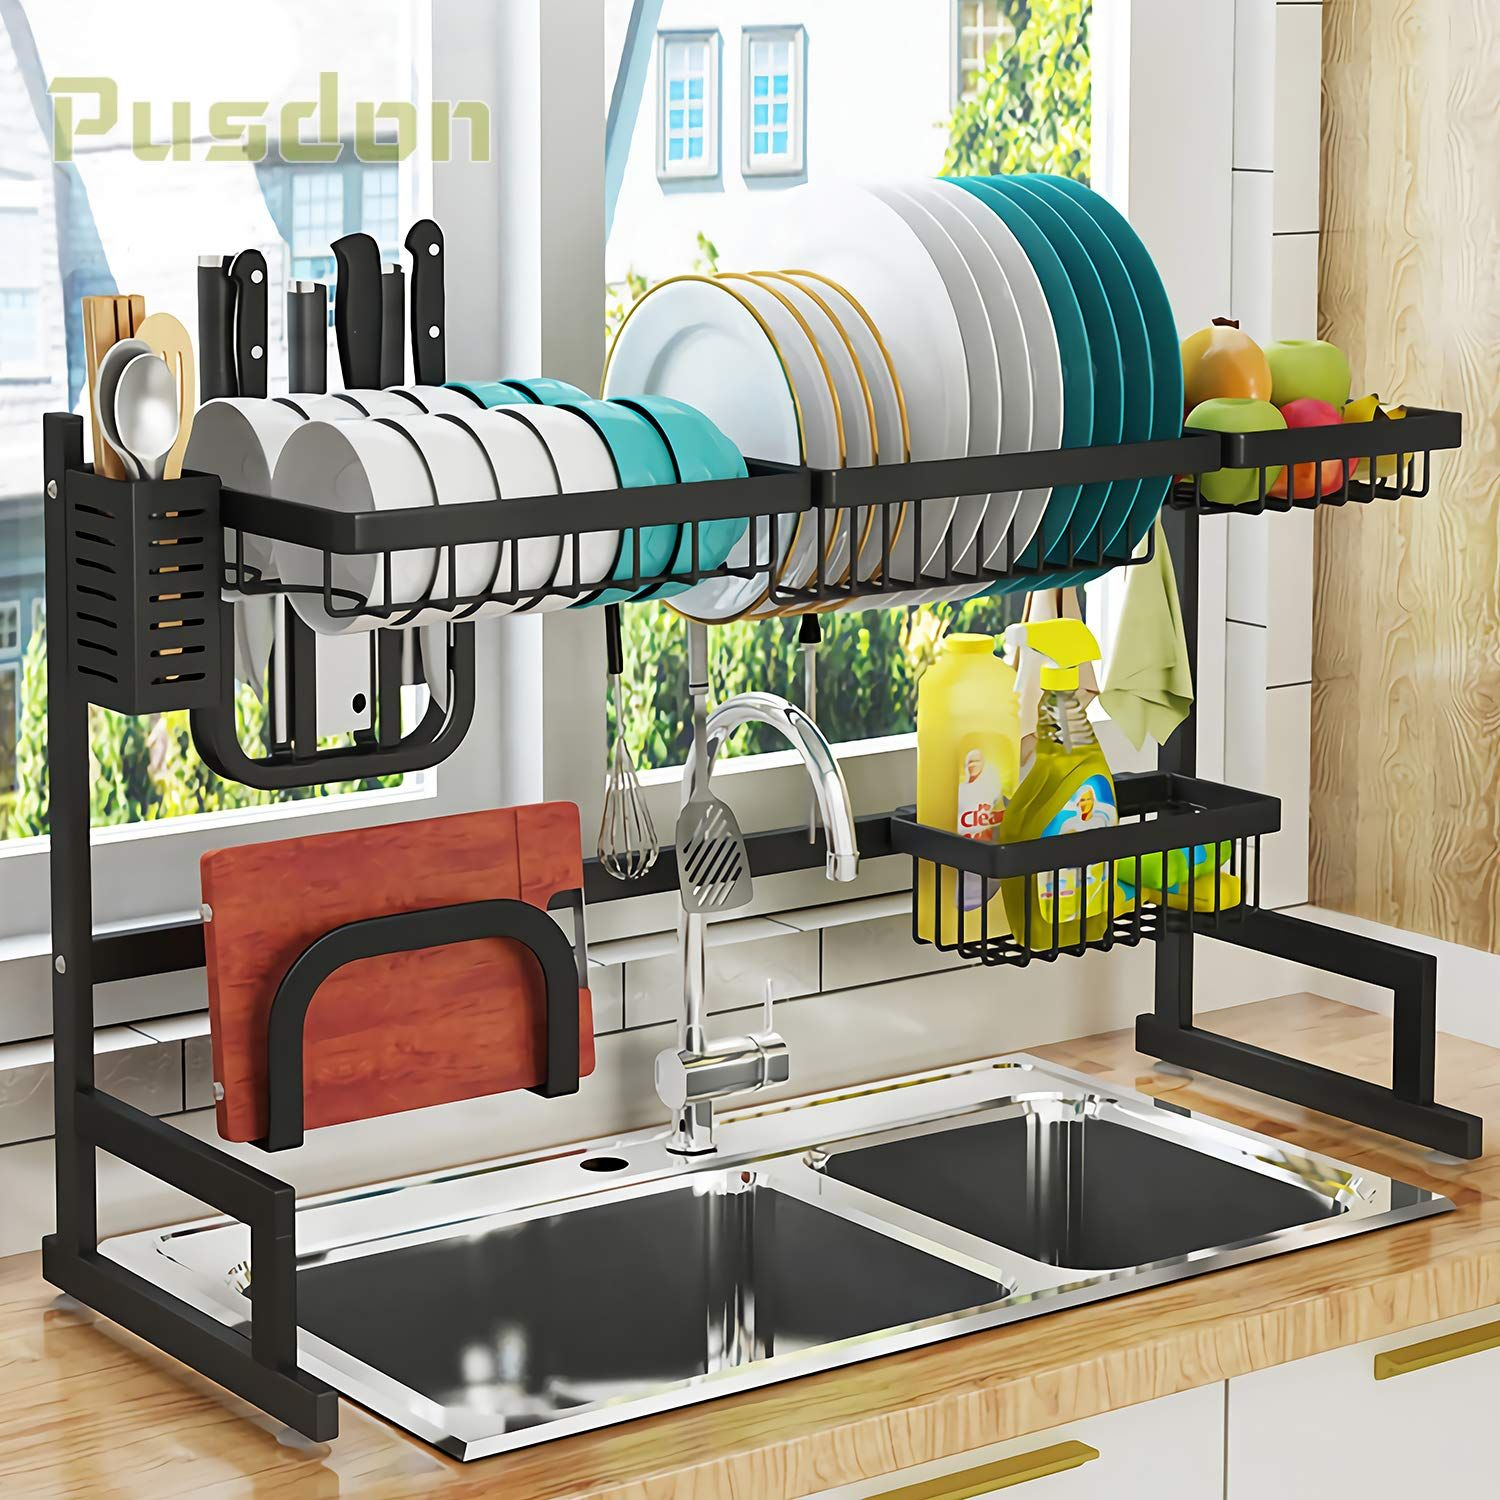 Dish Drying Rack Stainless Steel Dish Storage with